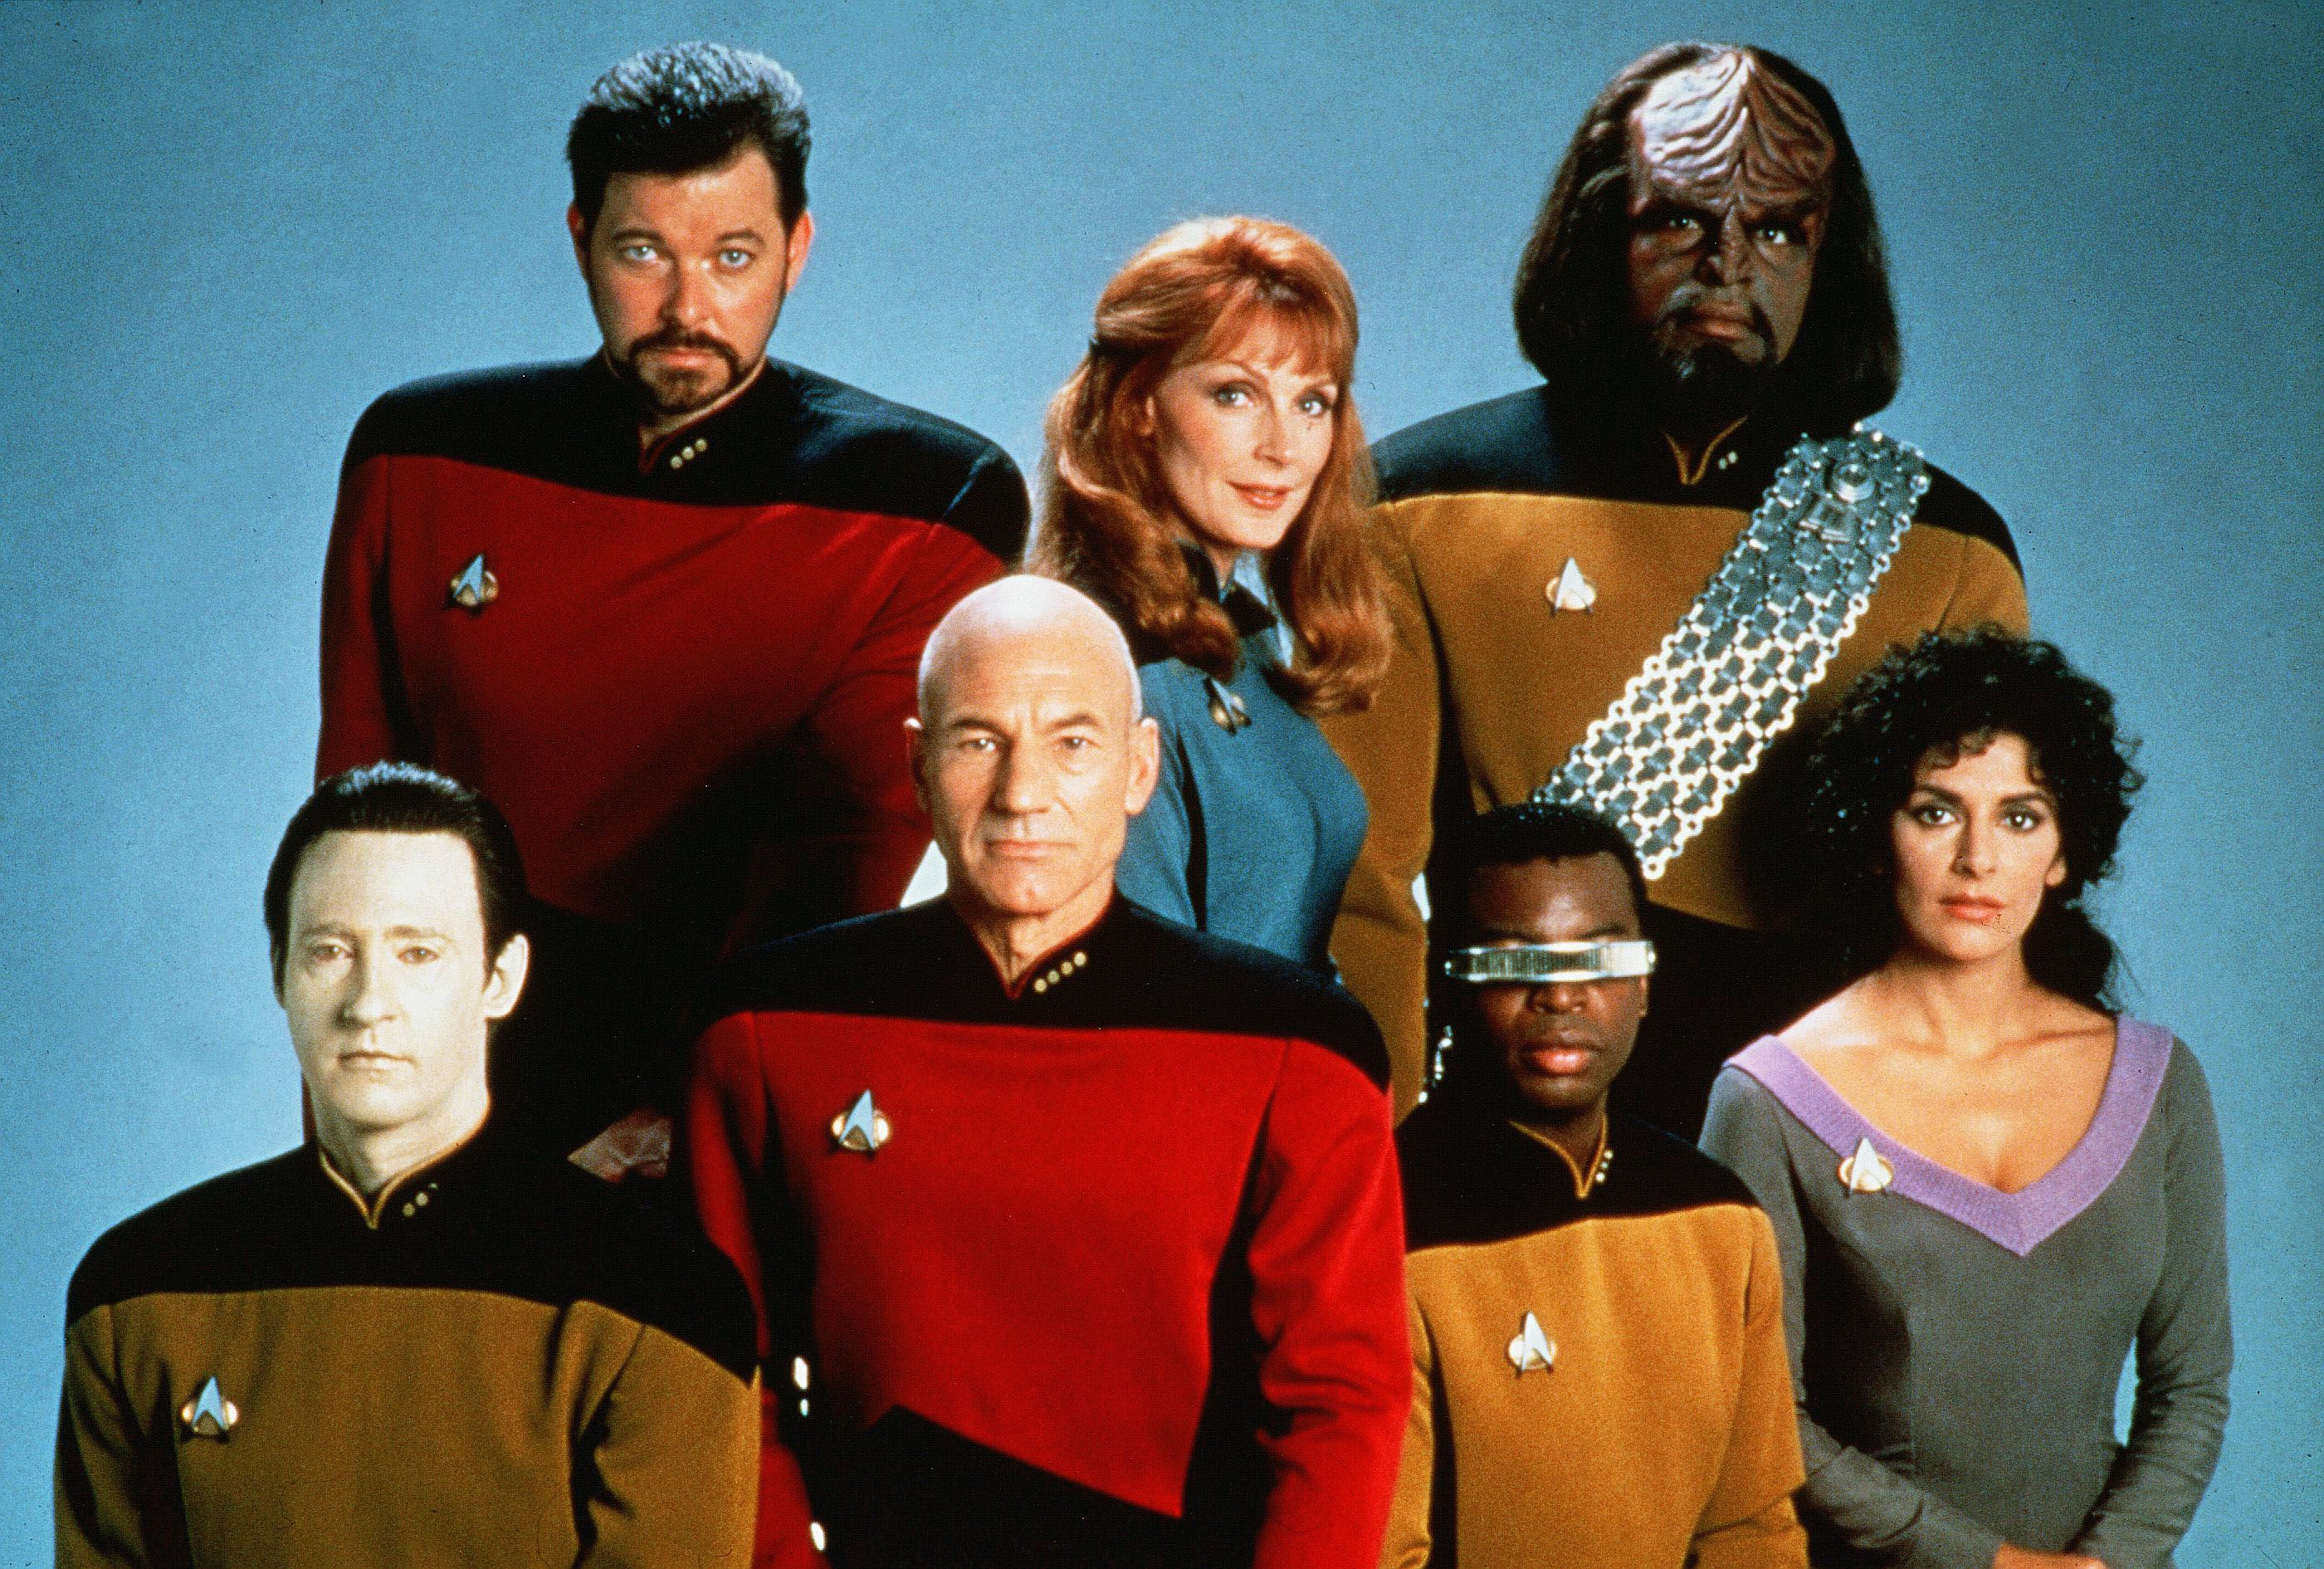 Star Trek: The Next Generation—Ranking the Crew From Picard to Pulaski |  IndieWire